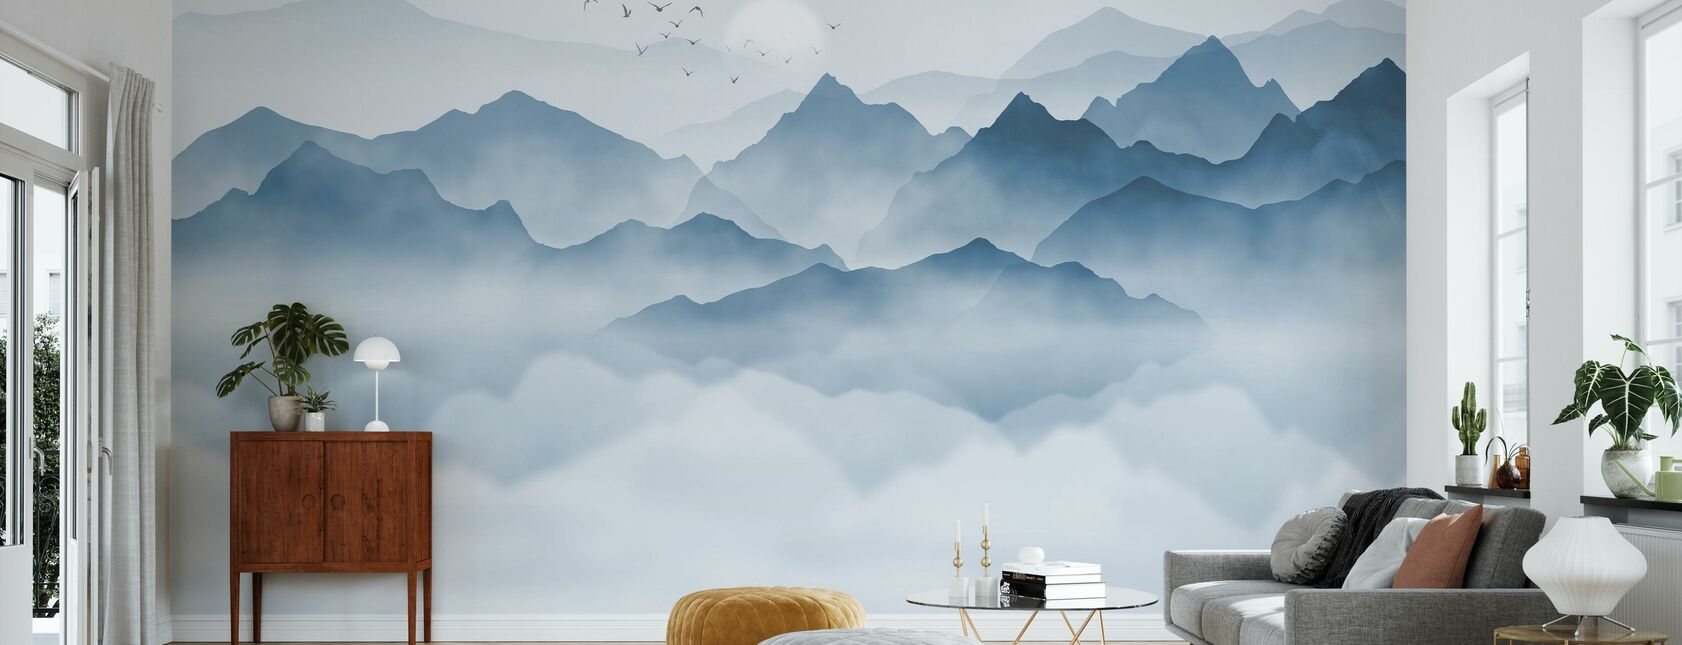 Mountainous - Wallpaper - Living Room